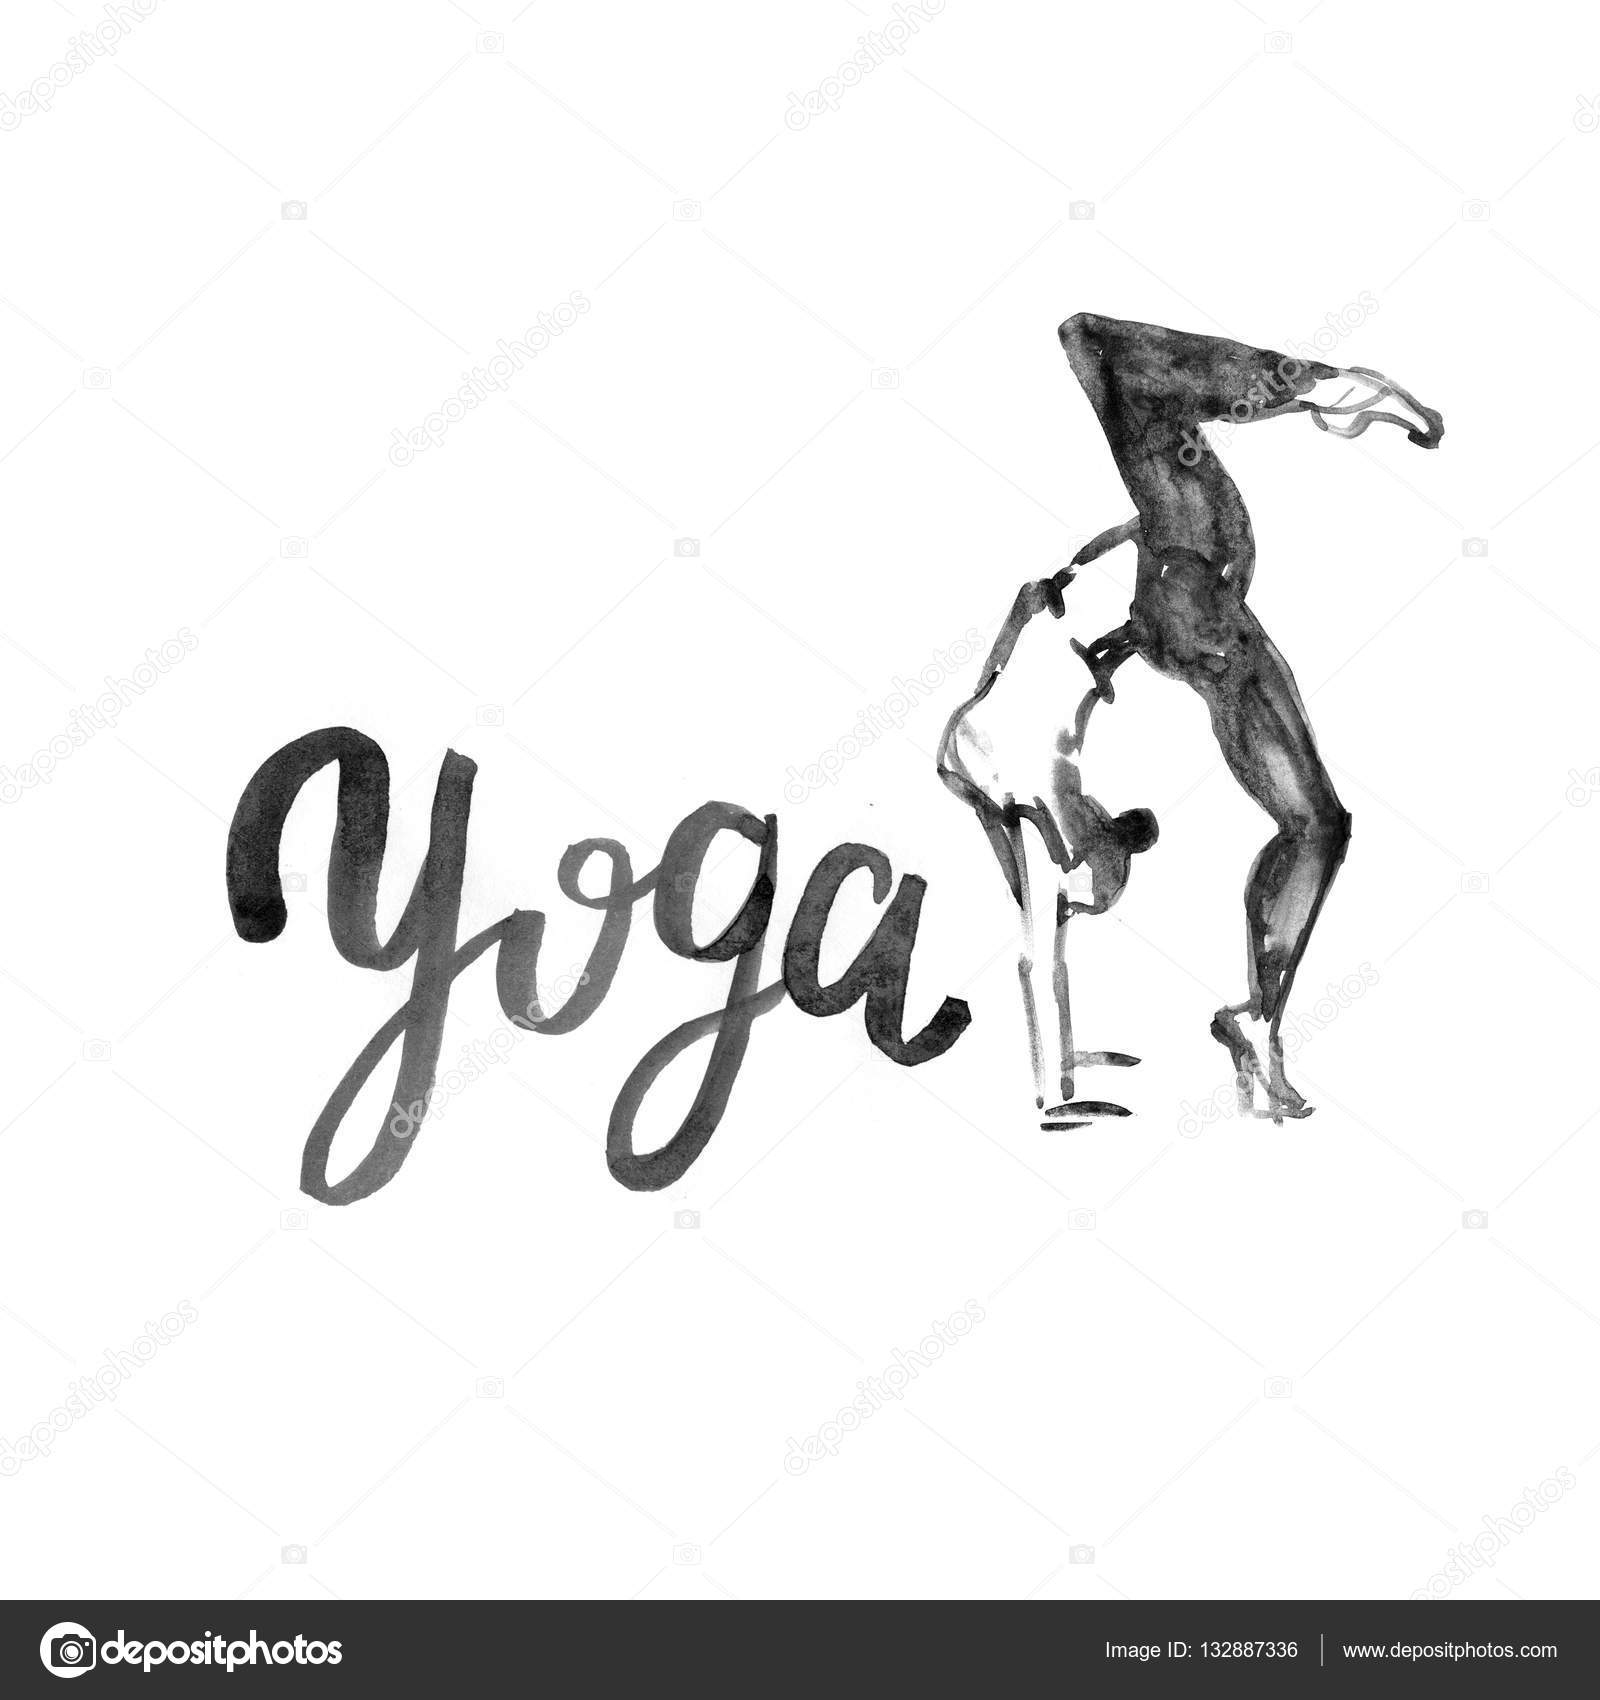 Watercolor Yoga Illustration Girl In Pose With Texture Logo For Class Studio Fitness Center Photo By 7slonov